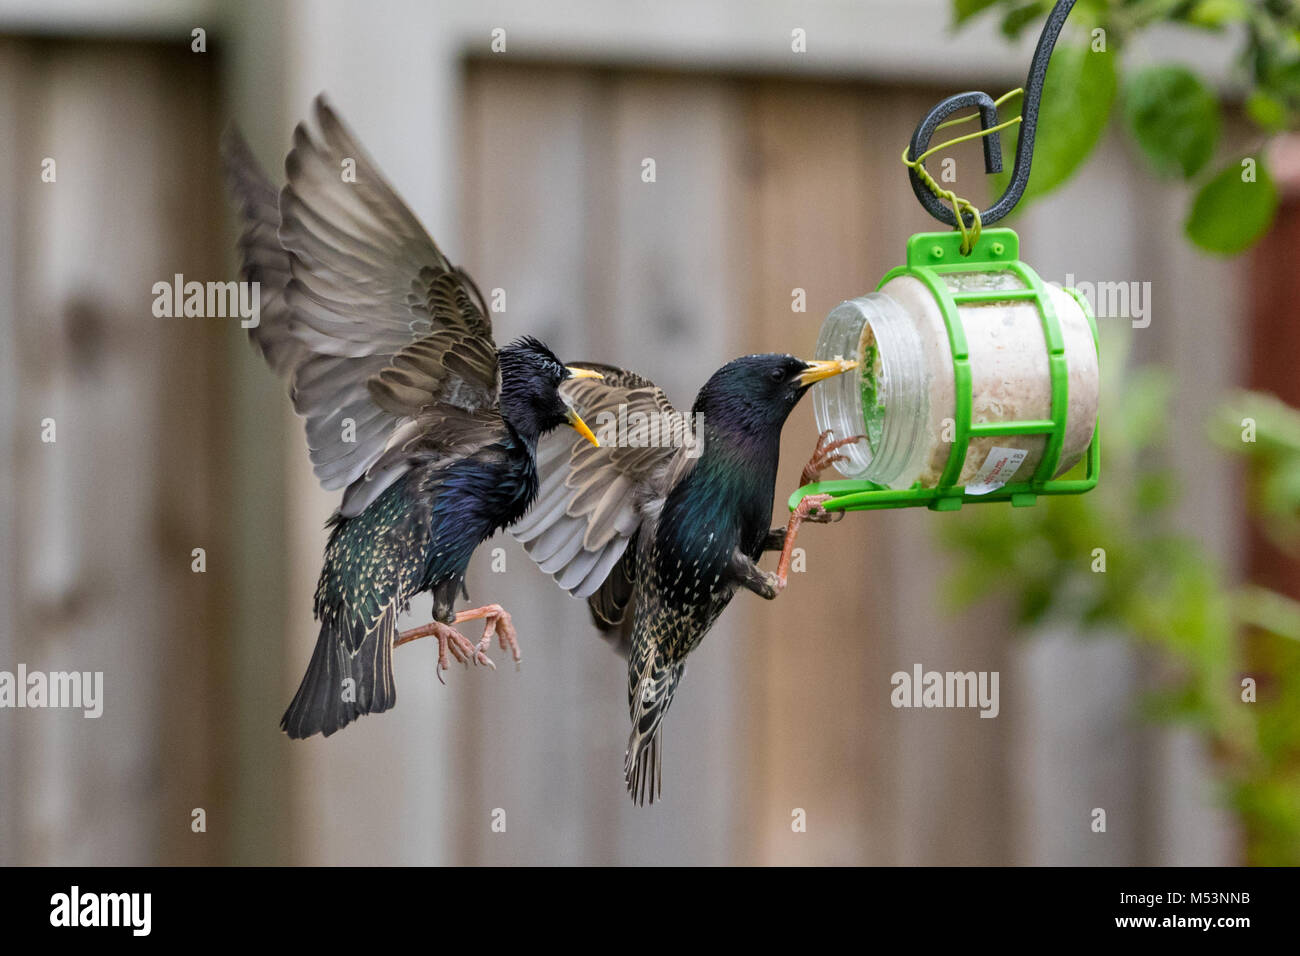 Starlings in flight fighting over food - Stock Image